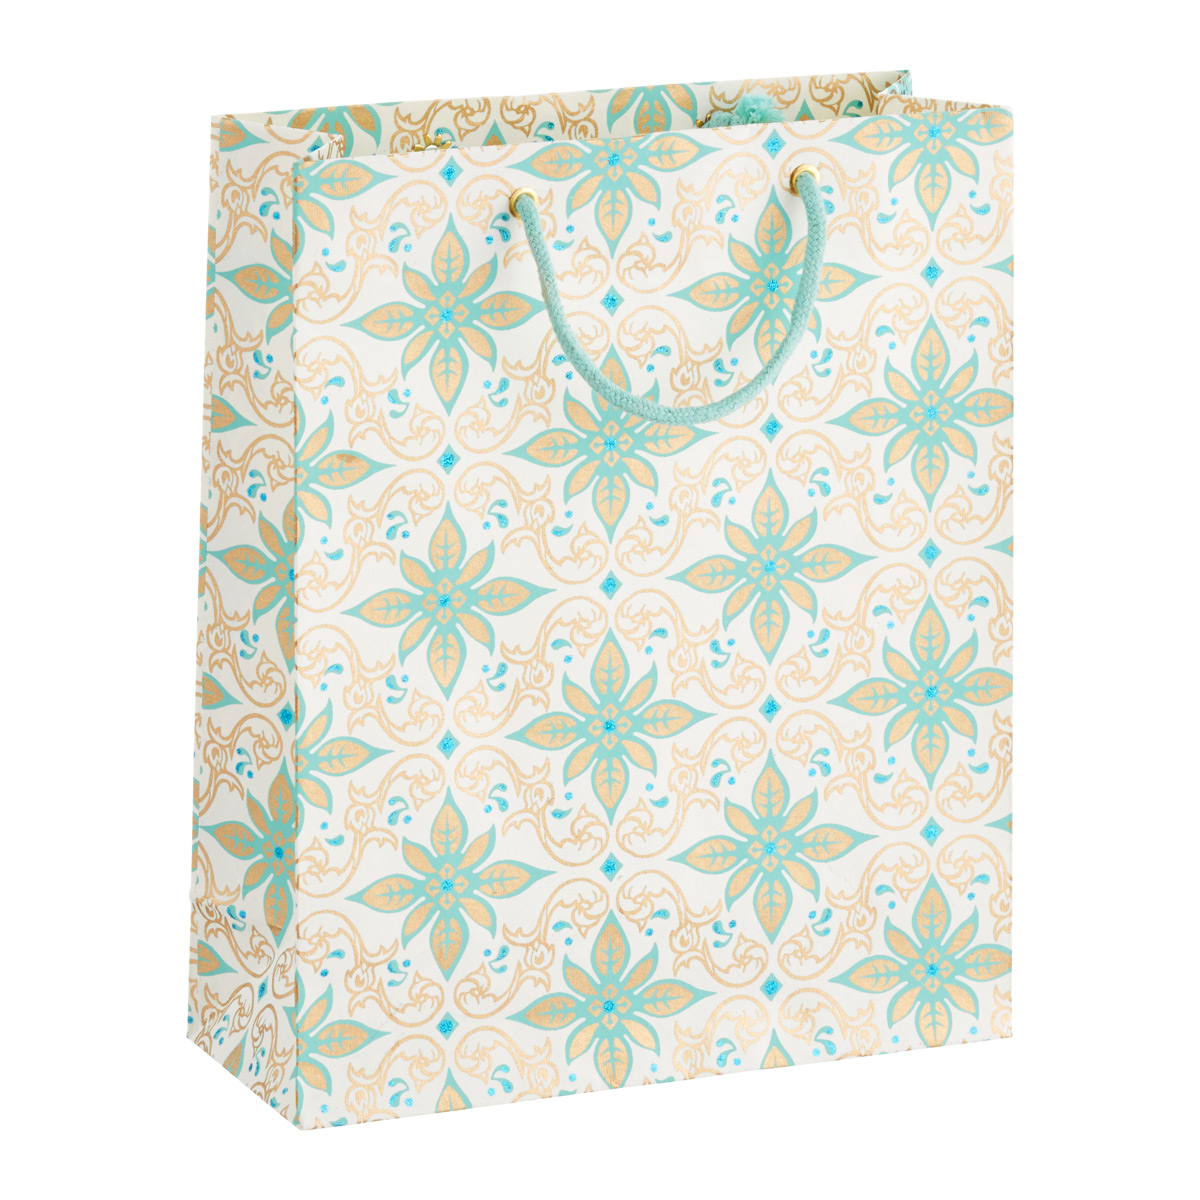 Vivid Wrap Large Gold & Aqua Scroll Recycled Gift Bag